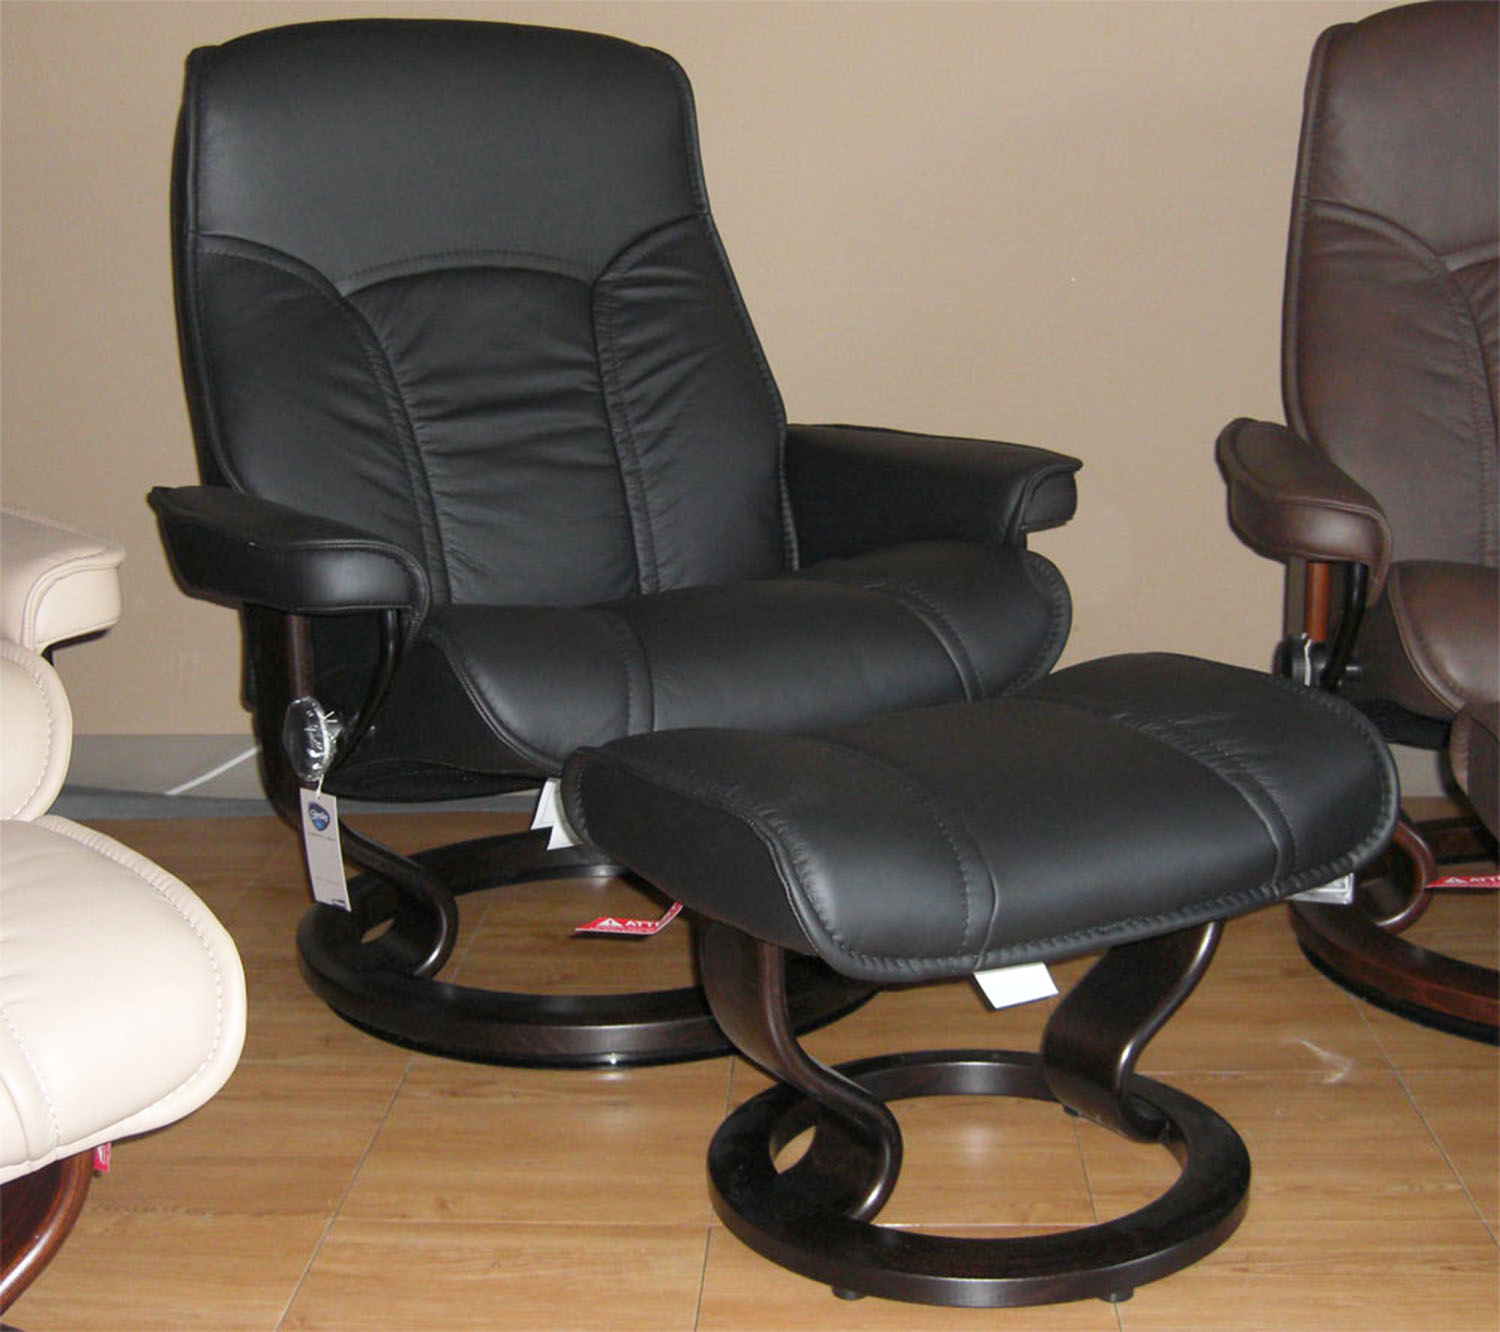 Incredible Stressless Senator Paloma Black Leather Recliner Chair And Ottoman By Ekornes Gmtry Best Dining Table And Chair Ideas Images Gmtryco